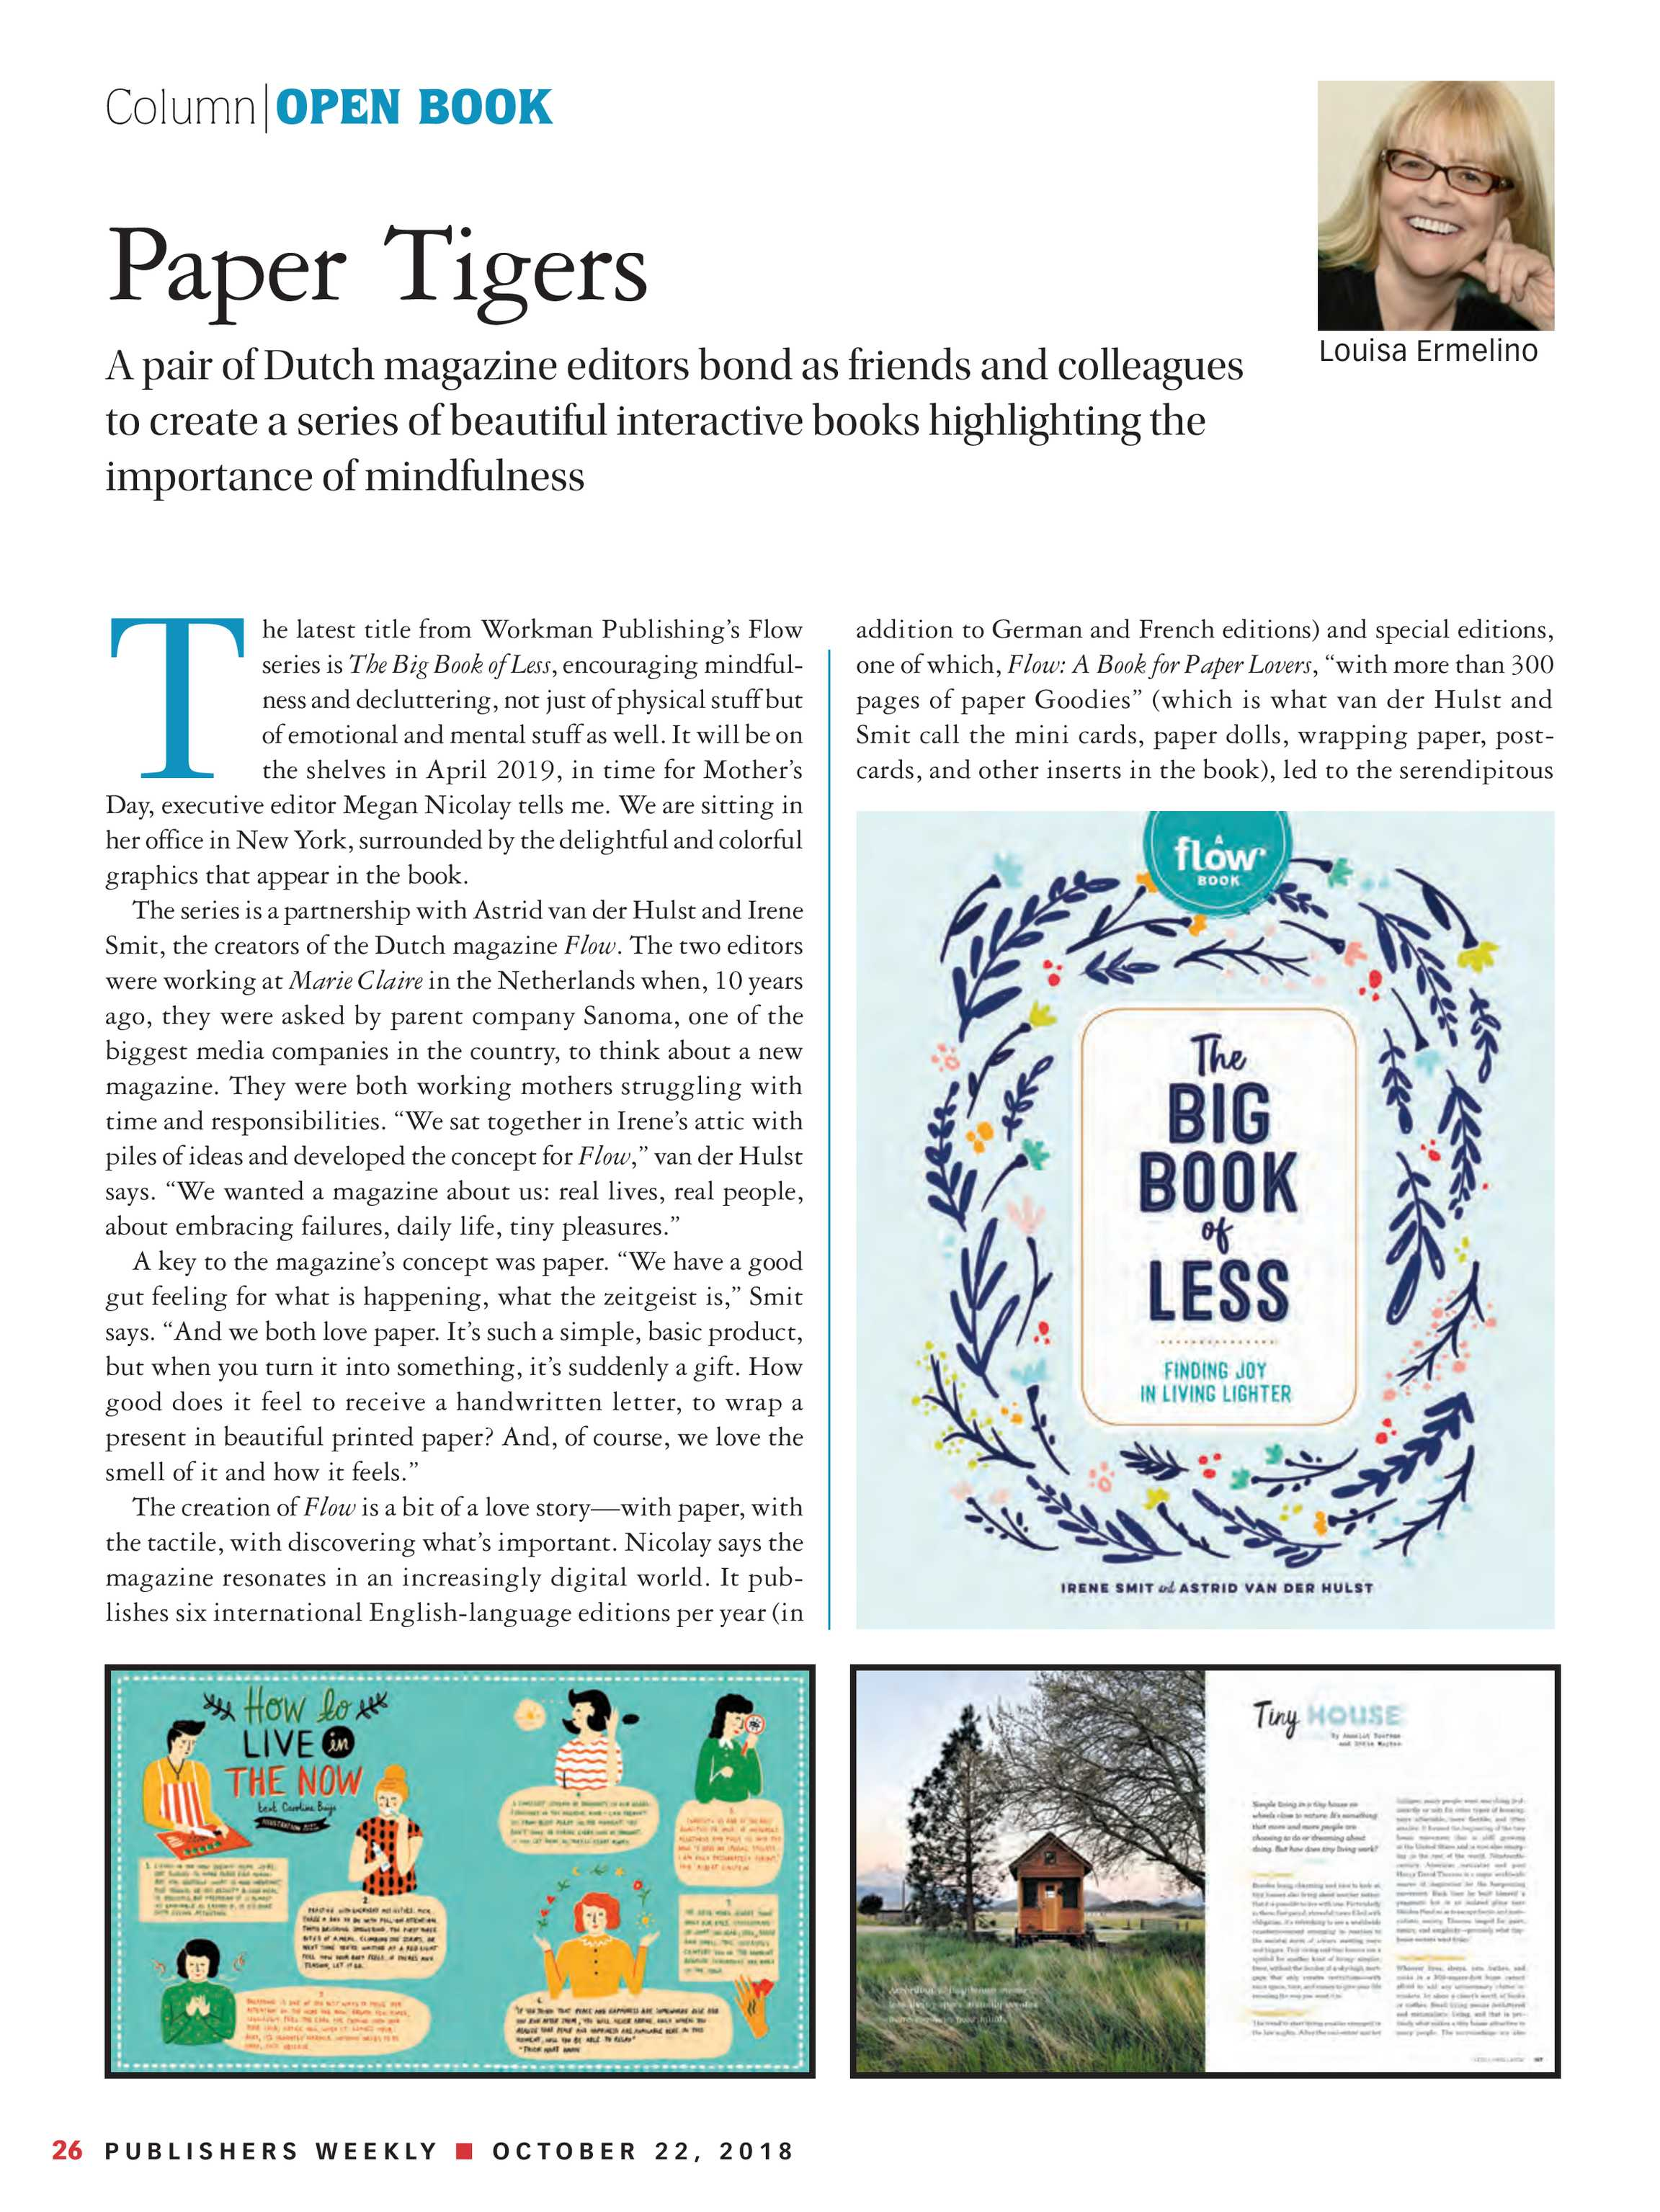 Publishers Weekly - October 22, 2018 - page 26